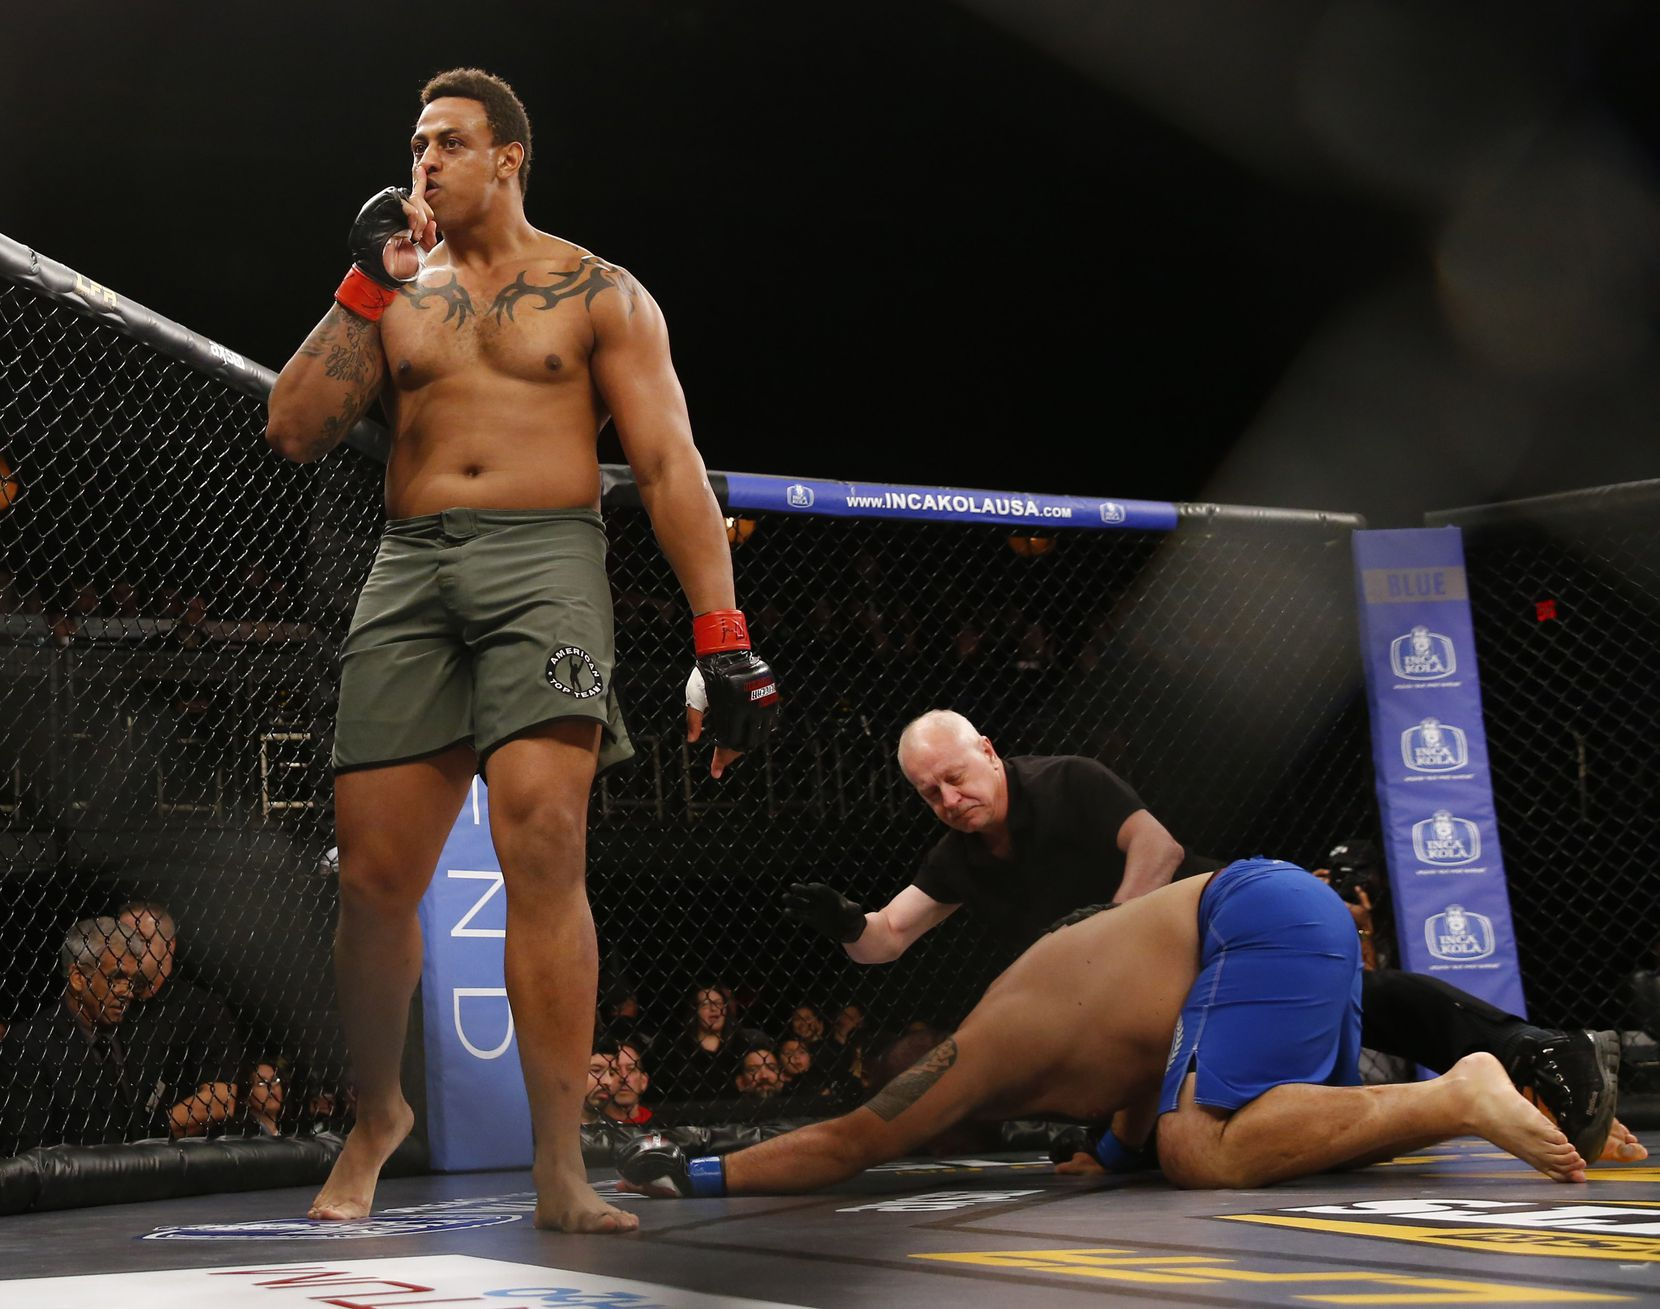 Former Cowboy Greg Hardy celebrates knocking Ryan Chester out in the first 14 seconds during an amateur heavyweight fight at The Bomb Factory in Dallas on Feb. 16, 2018.  (Nathan Hunsinger/The Dallas Morning News)